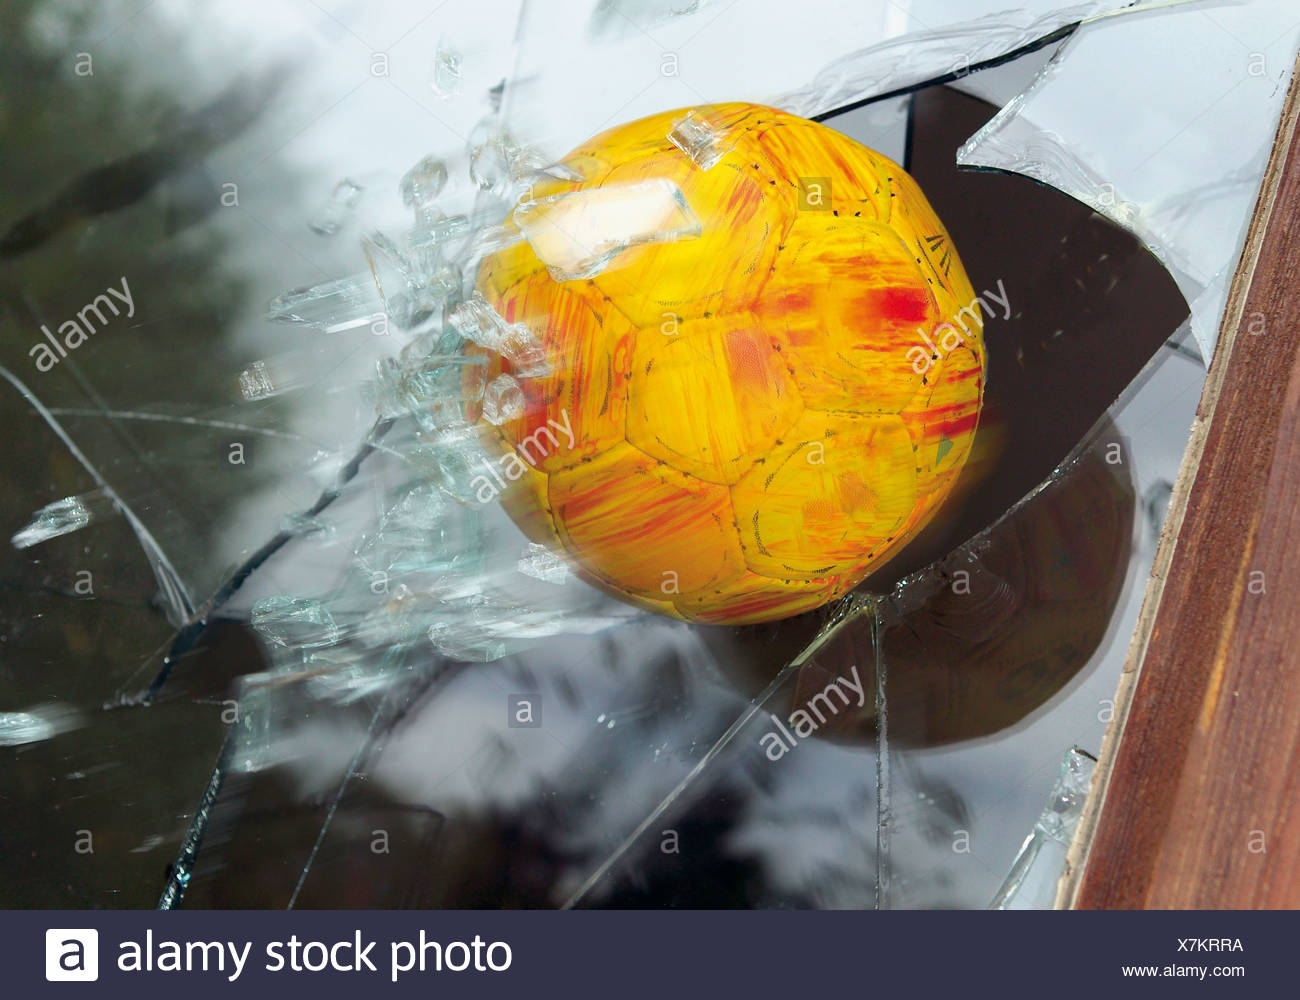 Close up of broken glass window by soccer ball - Stock Image